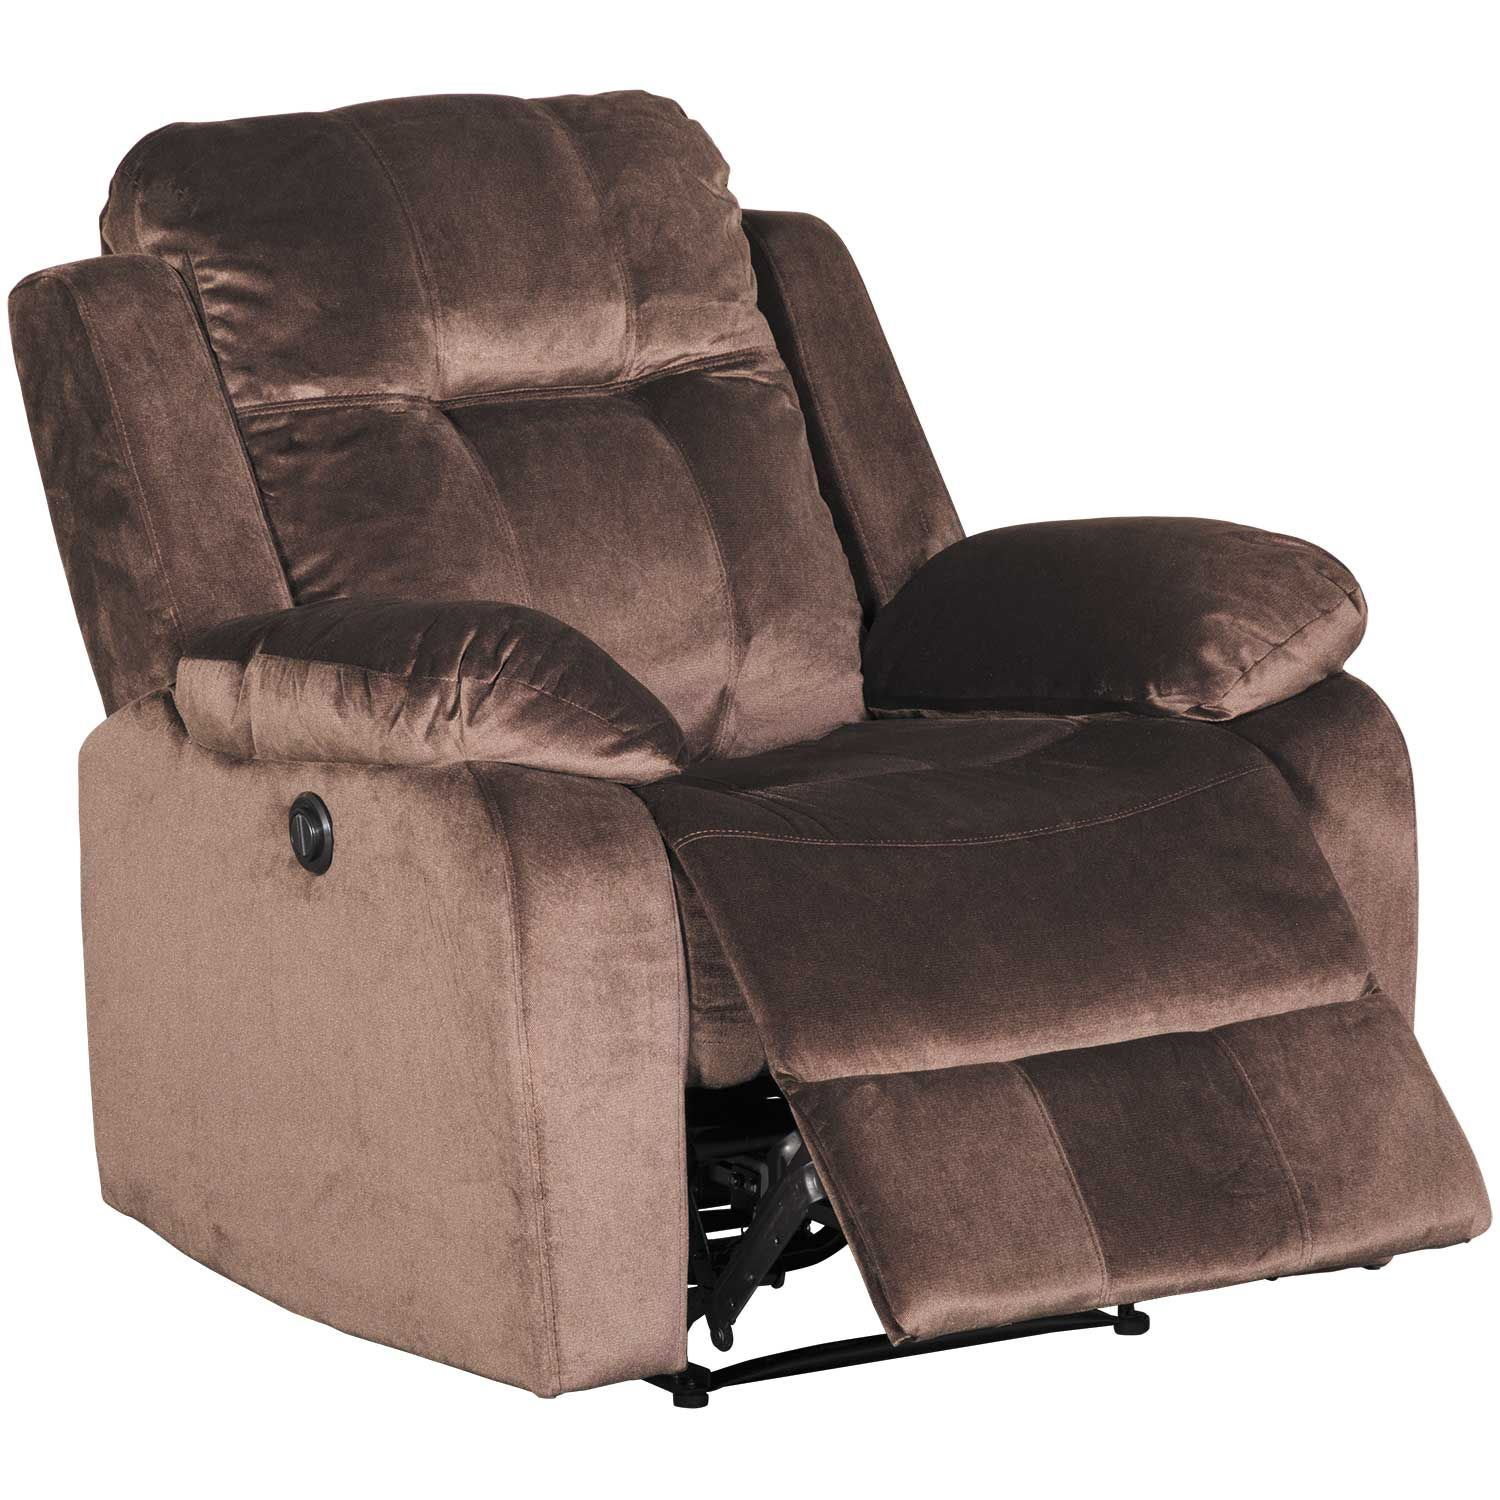 Picture of Chocolate Power Recliner